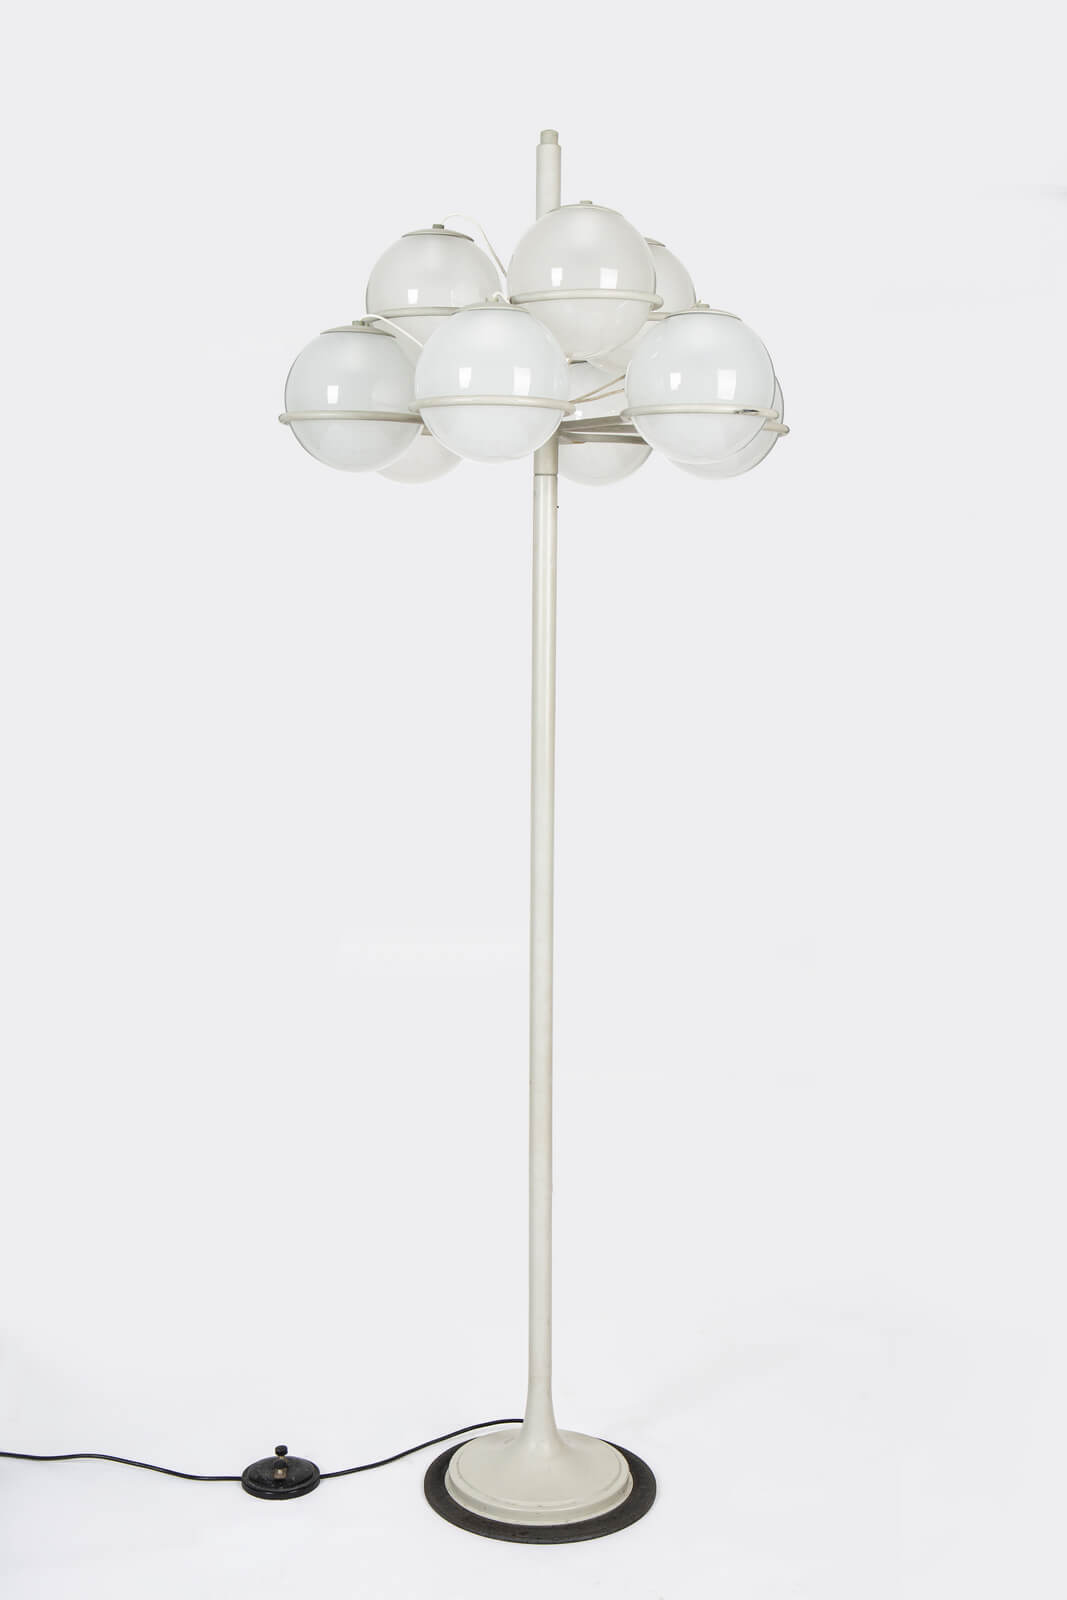 Floor lamp by Gino Sarfatti for sale